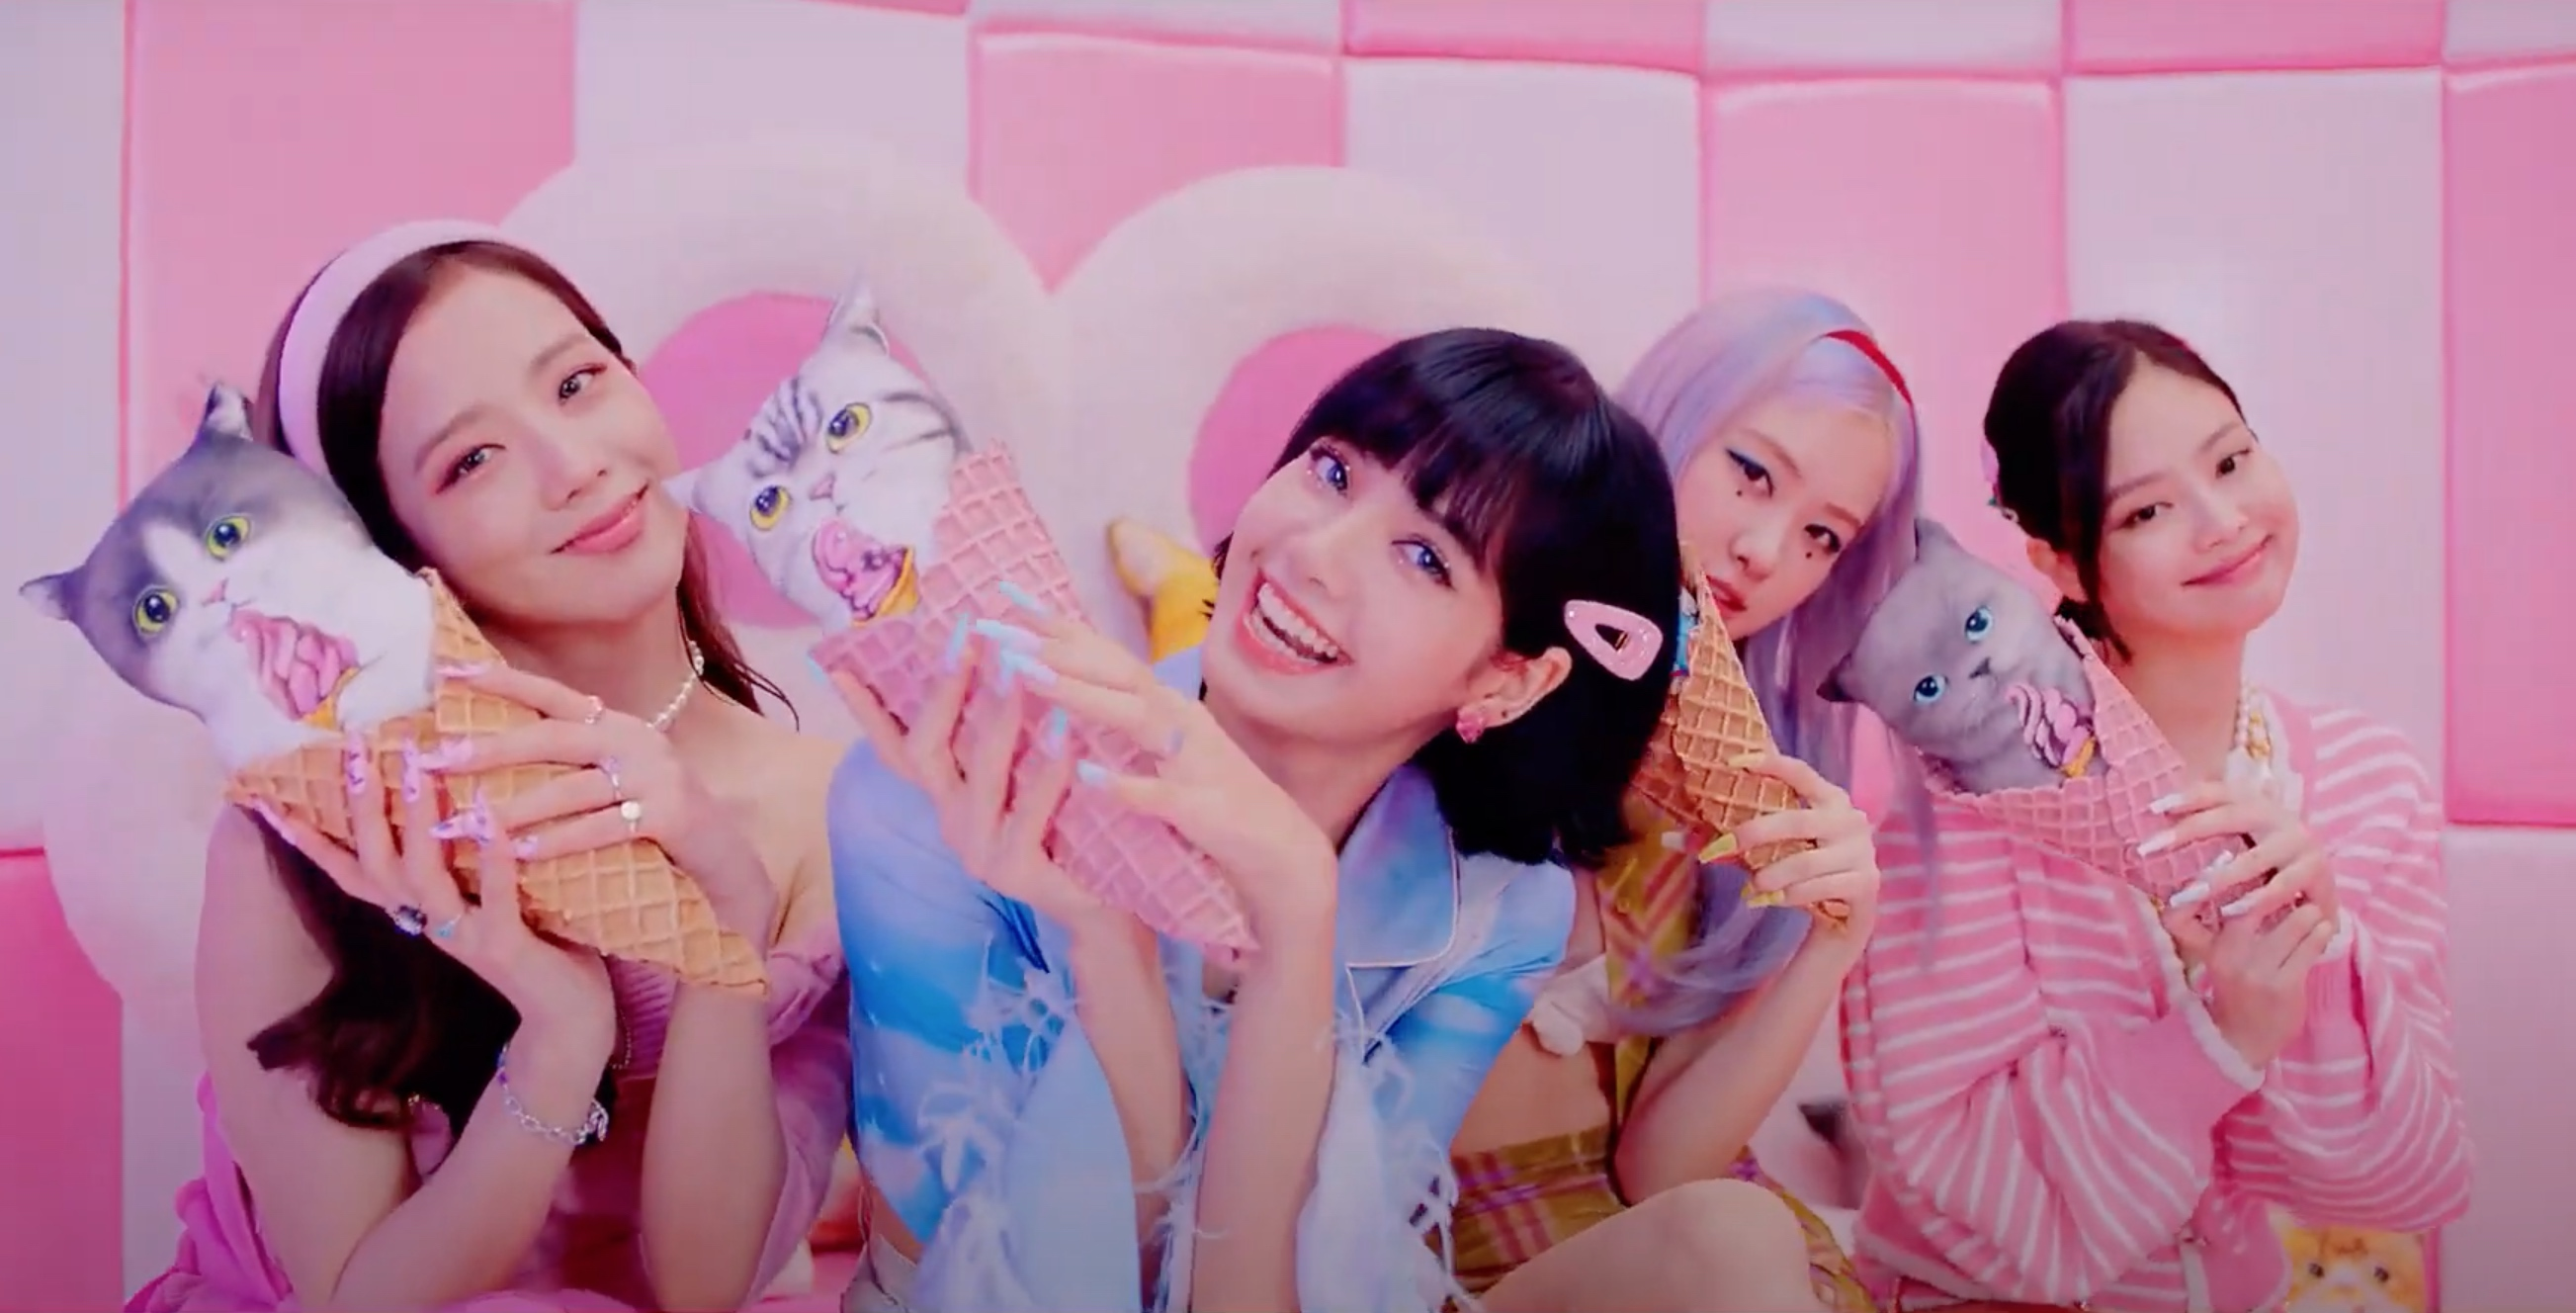 Blackpink, Selena Gomez Hang Out in a Pastel, 'Ice Cream'-Filled World in Flirty New Video thumbnail